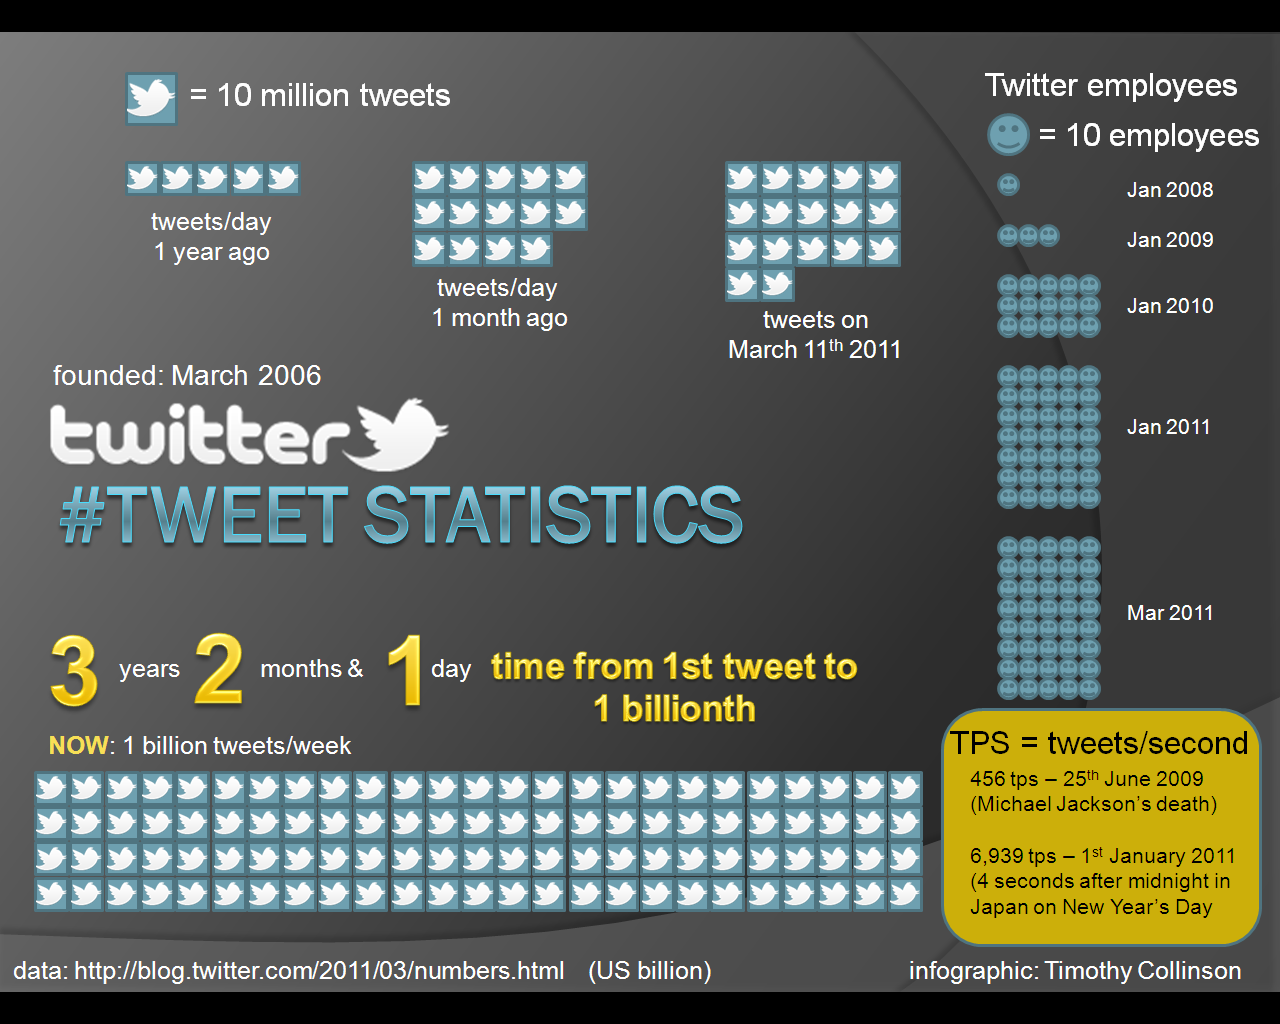 infographic with March 2011 statistics on Twitter